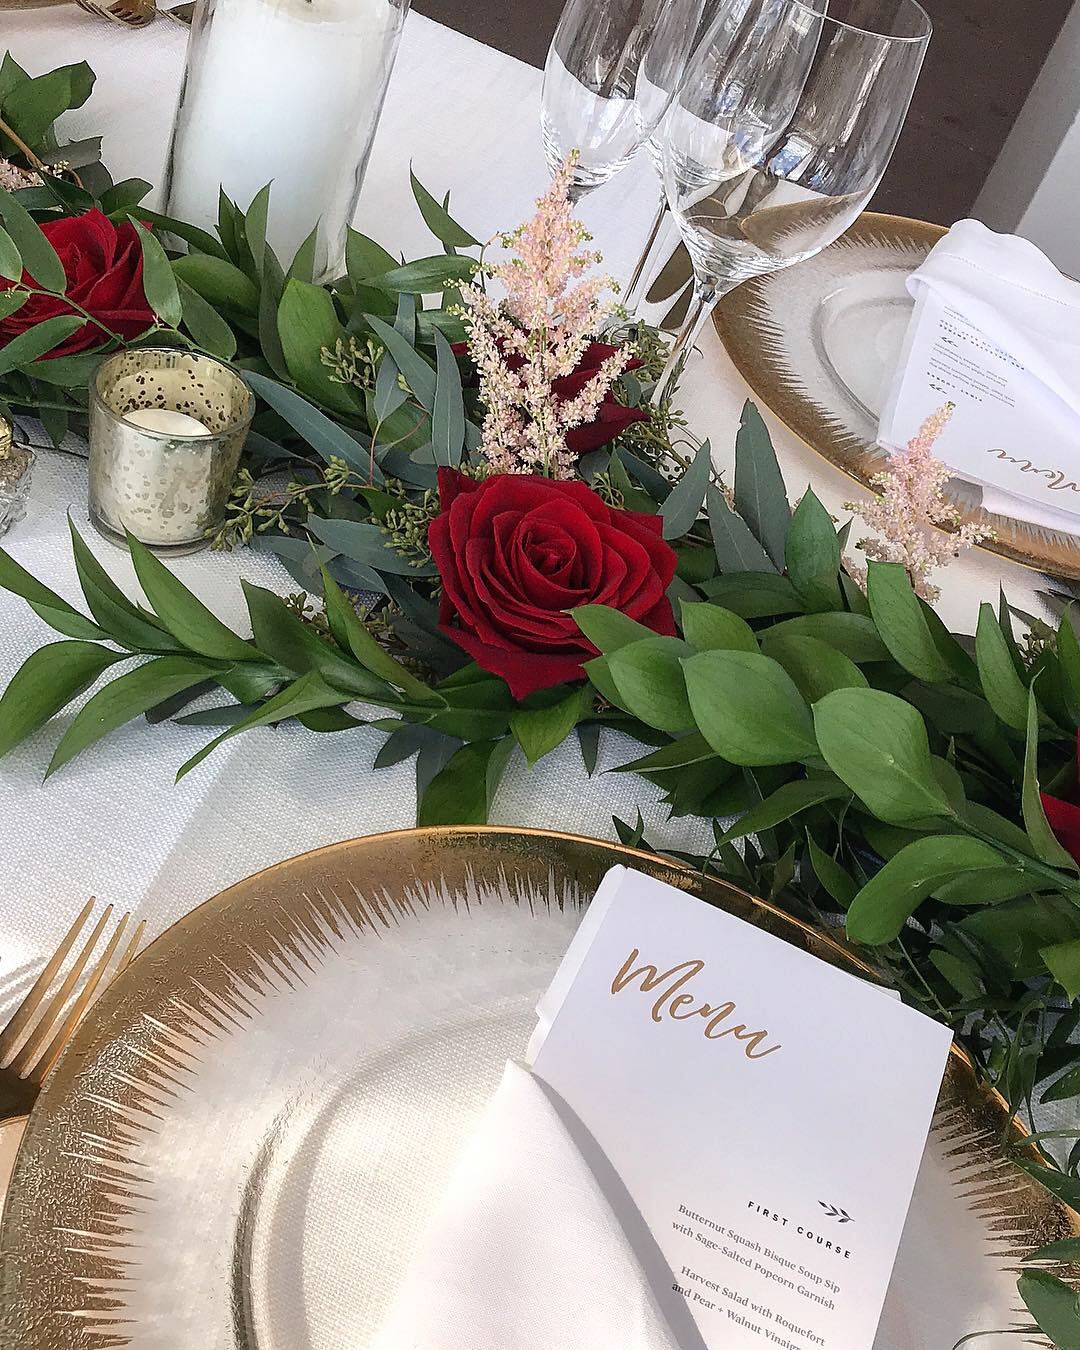 Long centerpiece made with red roses and greenery